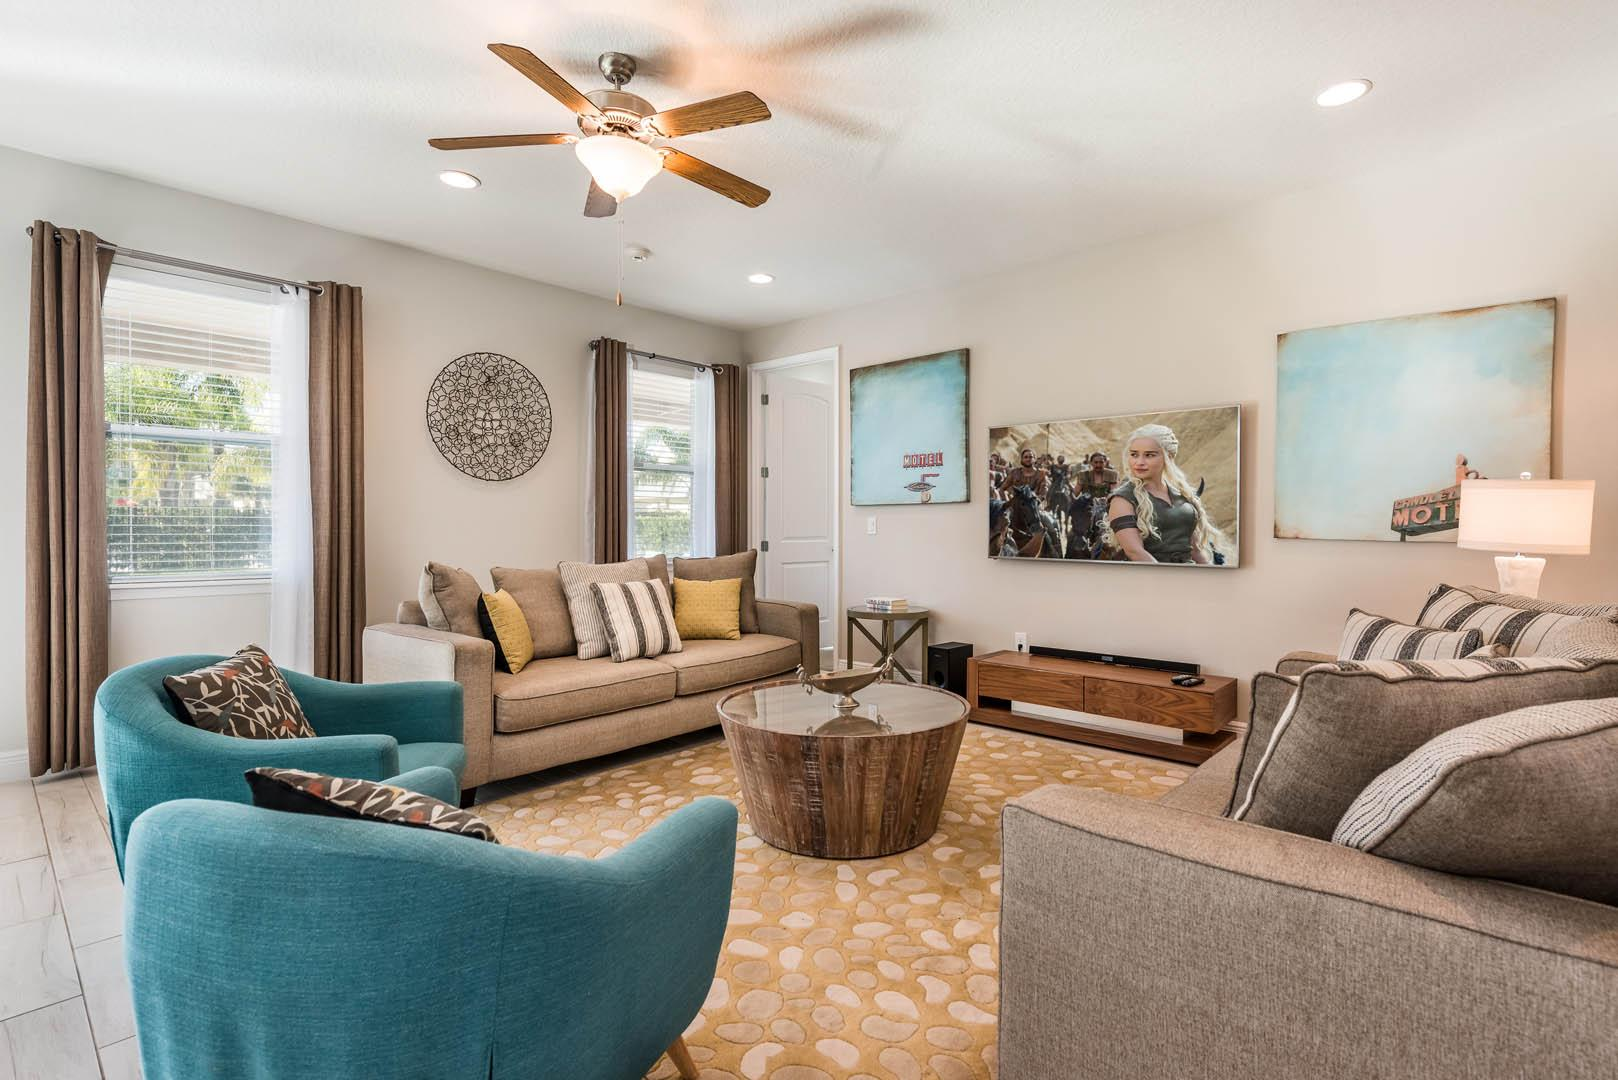 Property Image 2 - Stylish Home with Themed Game Room near Disney